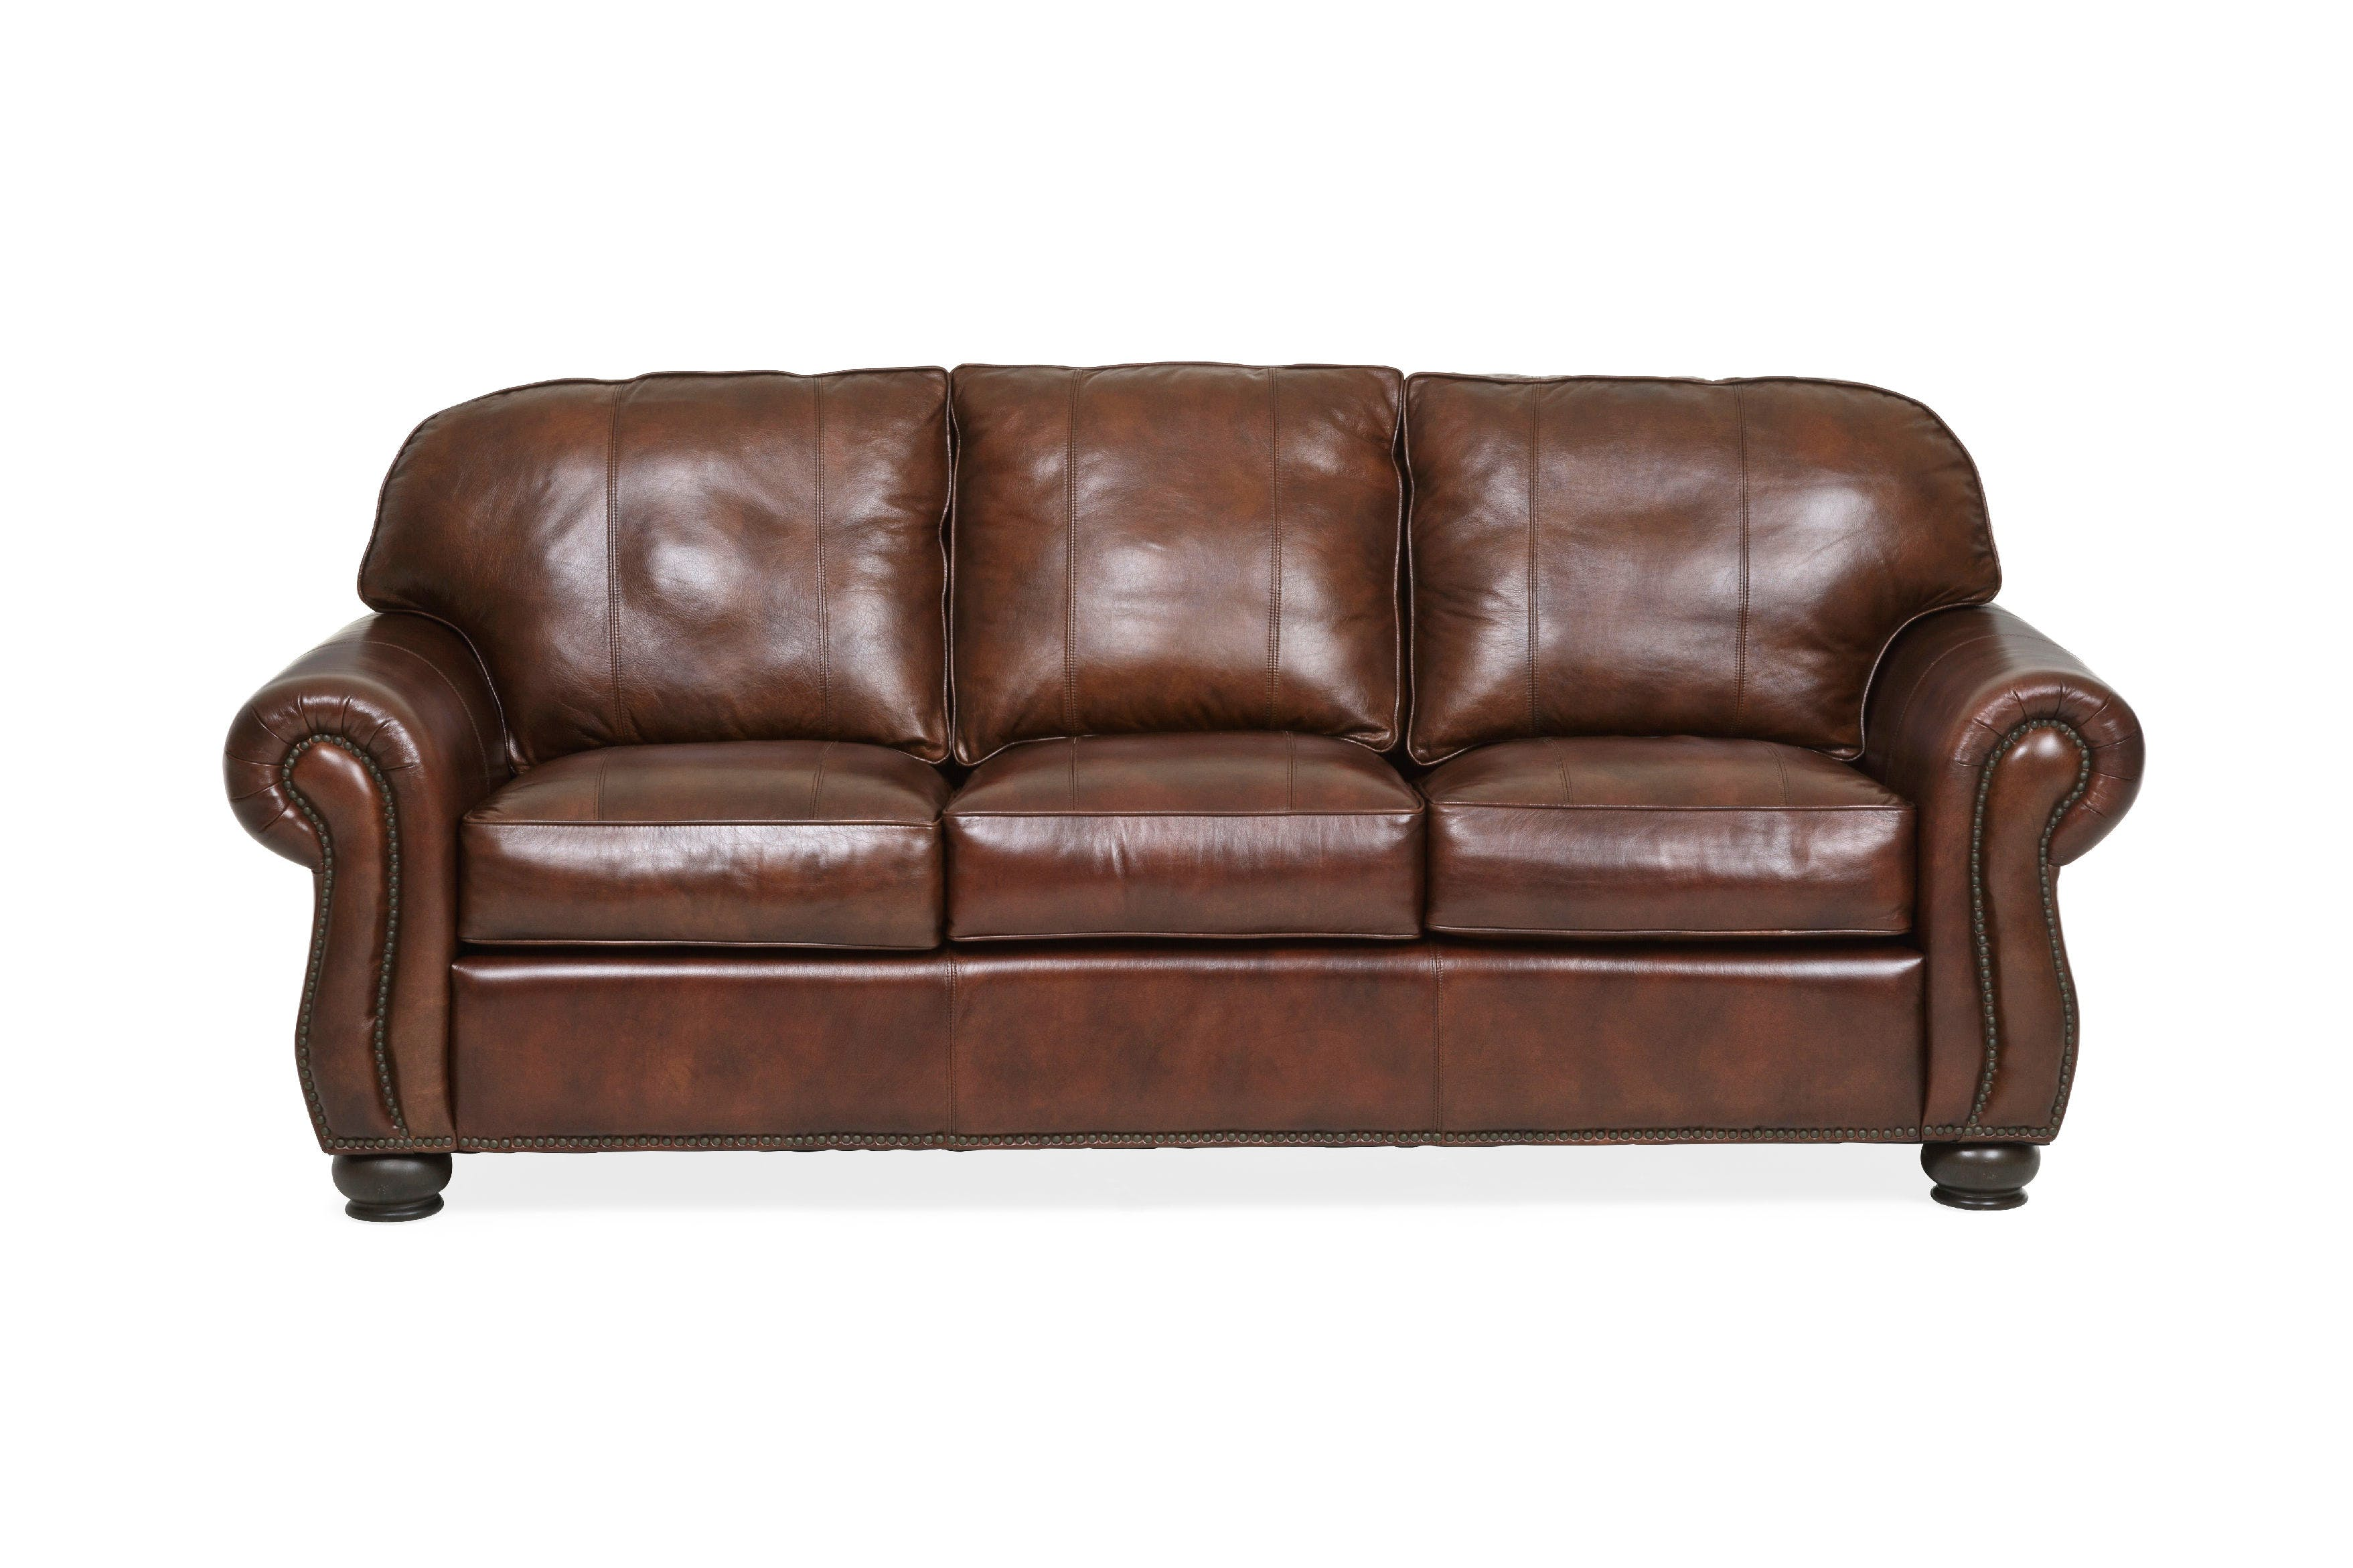 Living Room Benson Leather Sofa